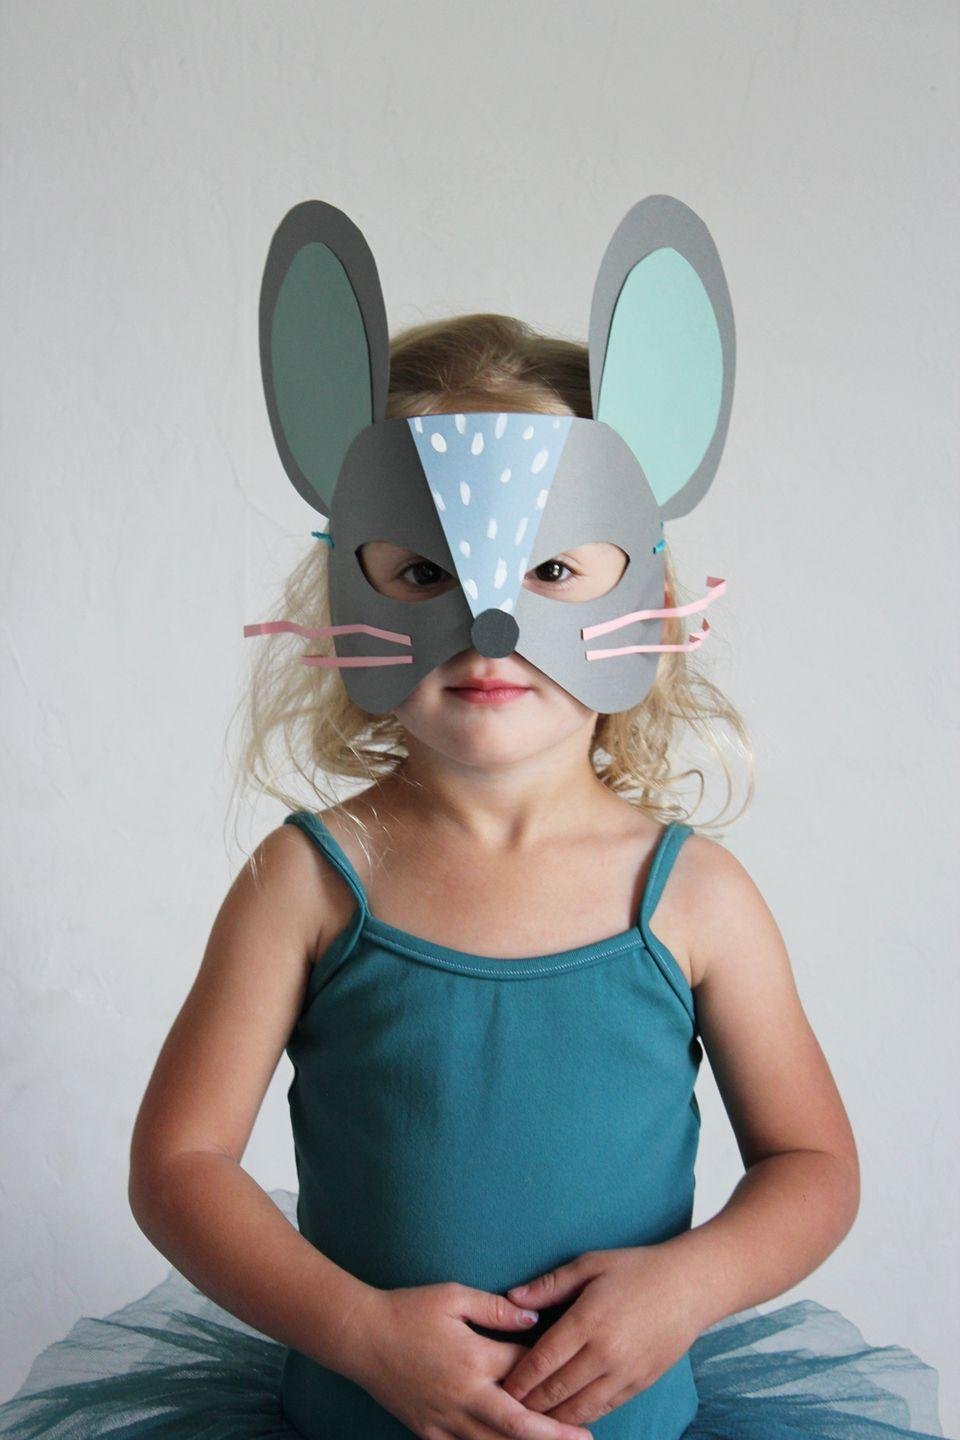 "<p>Transform your toddler into a scurrying cutie with this printable template-turned mask. </p><p><strong>Get the tutorial at <a href=""http://mermagblog.com/paper-cat-and-mouse-mask-diys/"" rel=""nofollow noopener"" target=""_blank"" data-ylk=""slk:Mer Mag"" class=""link rapid-noclick-resp"">Mer Mag</a>.</strong></p>"